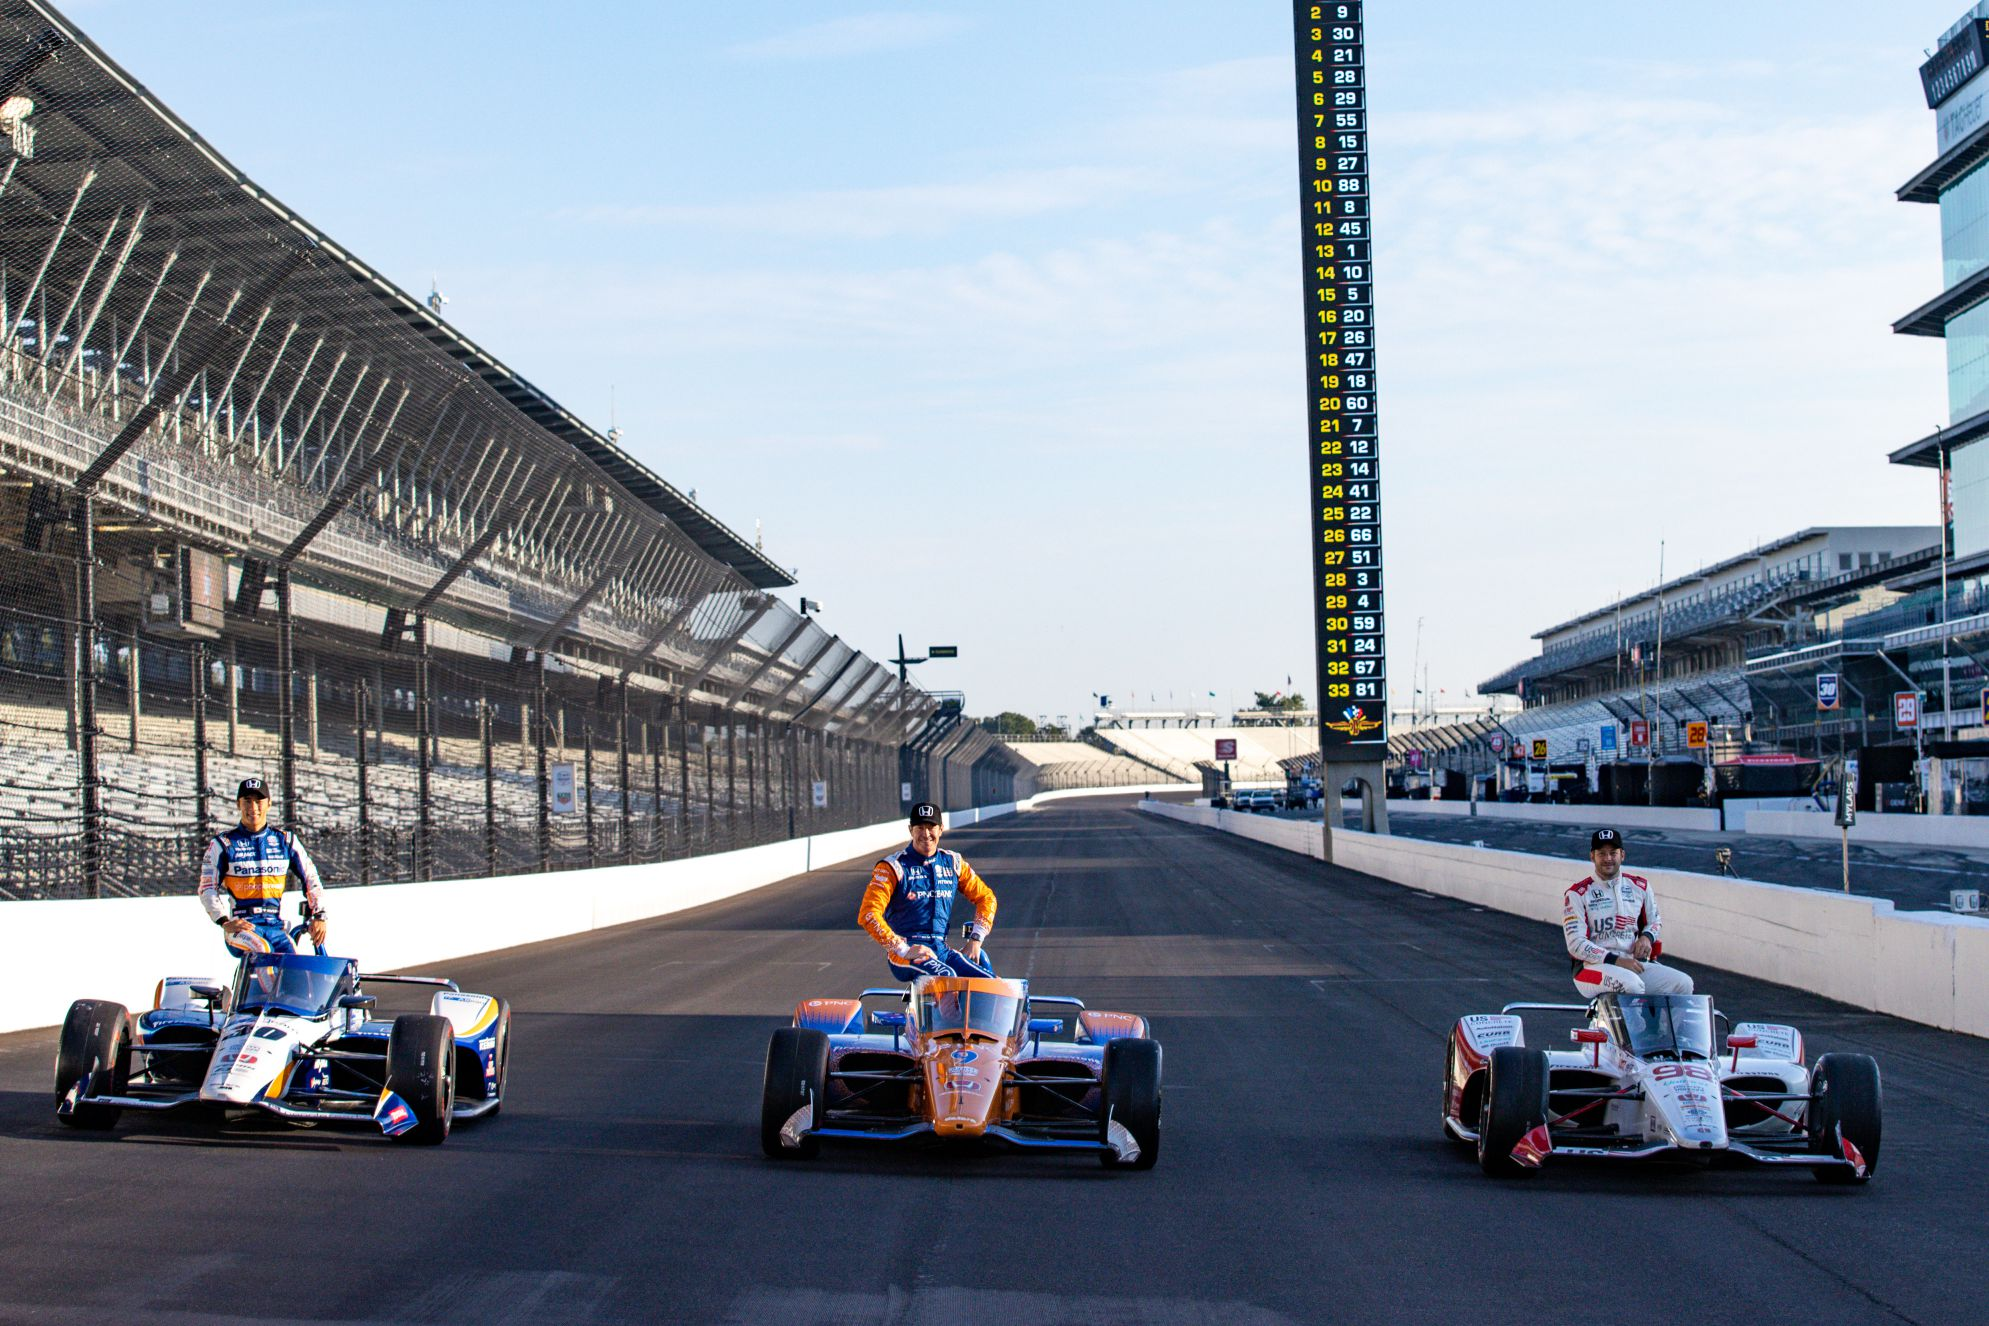 Front Row starters for the 104th Running of the Indianapolis 500 at the Indianapolis Motor Speedway: Takuma Sato, Scott Dixon and Marco Andretti. © [Andy Clary/ Spacesuit Media]